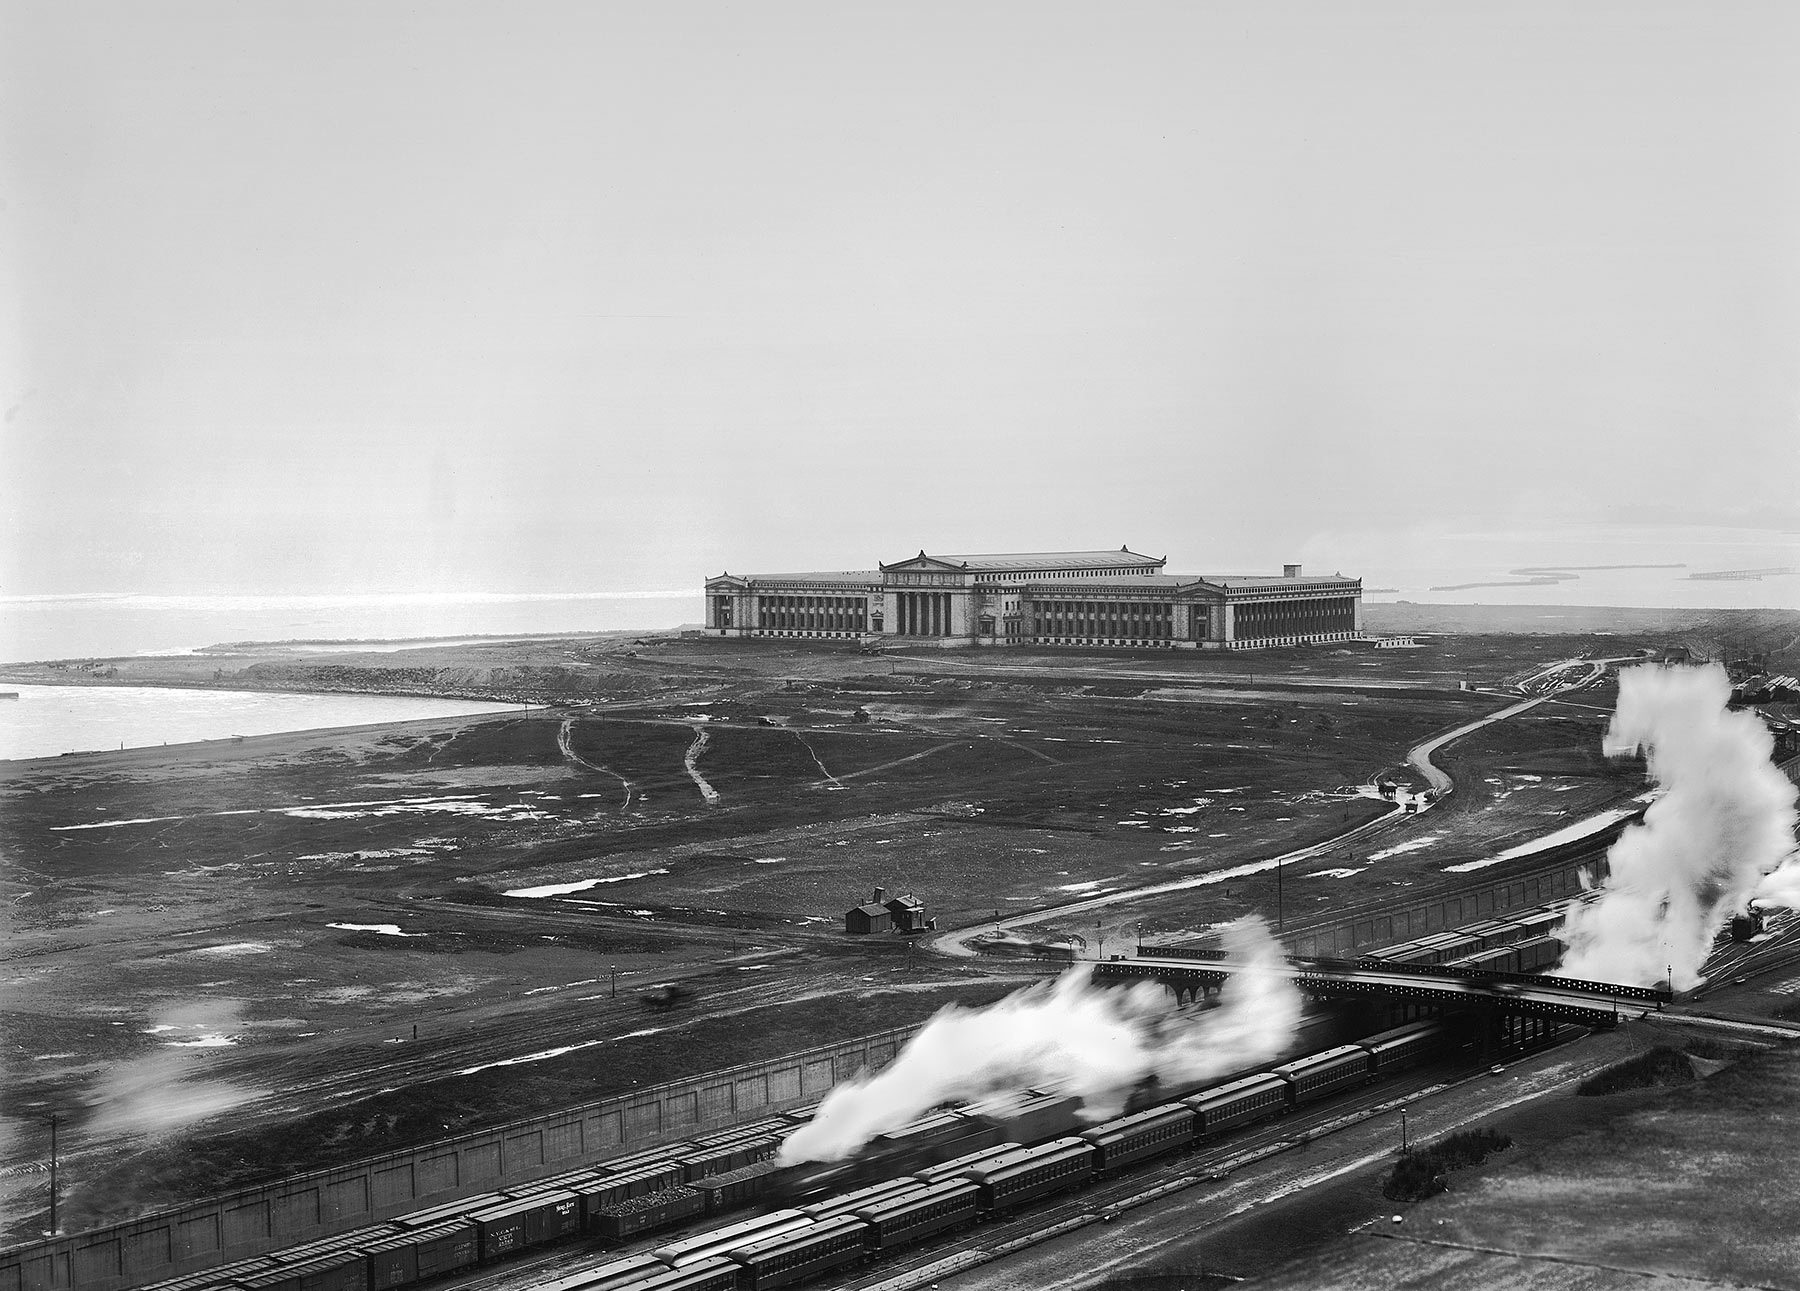 Grant Park Extension and Field Museum, ca. 1920. Chicago Park District Records: Photographs, Special Collections, Chicago Public Library.